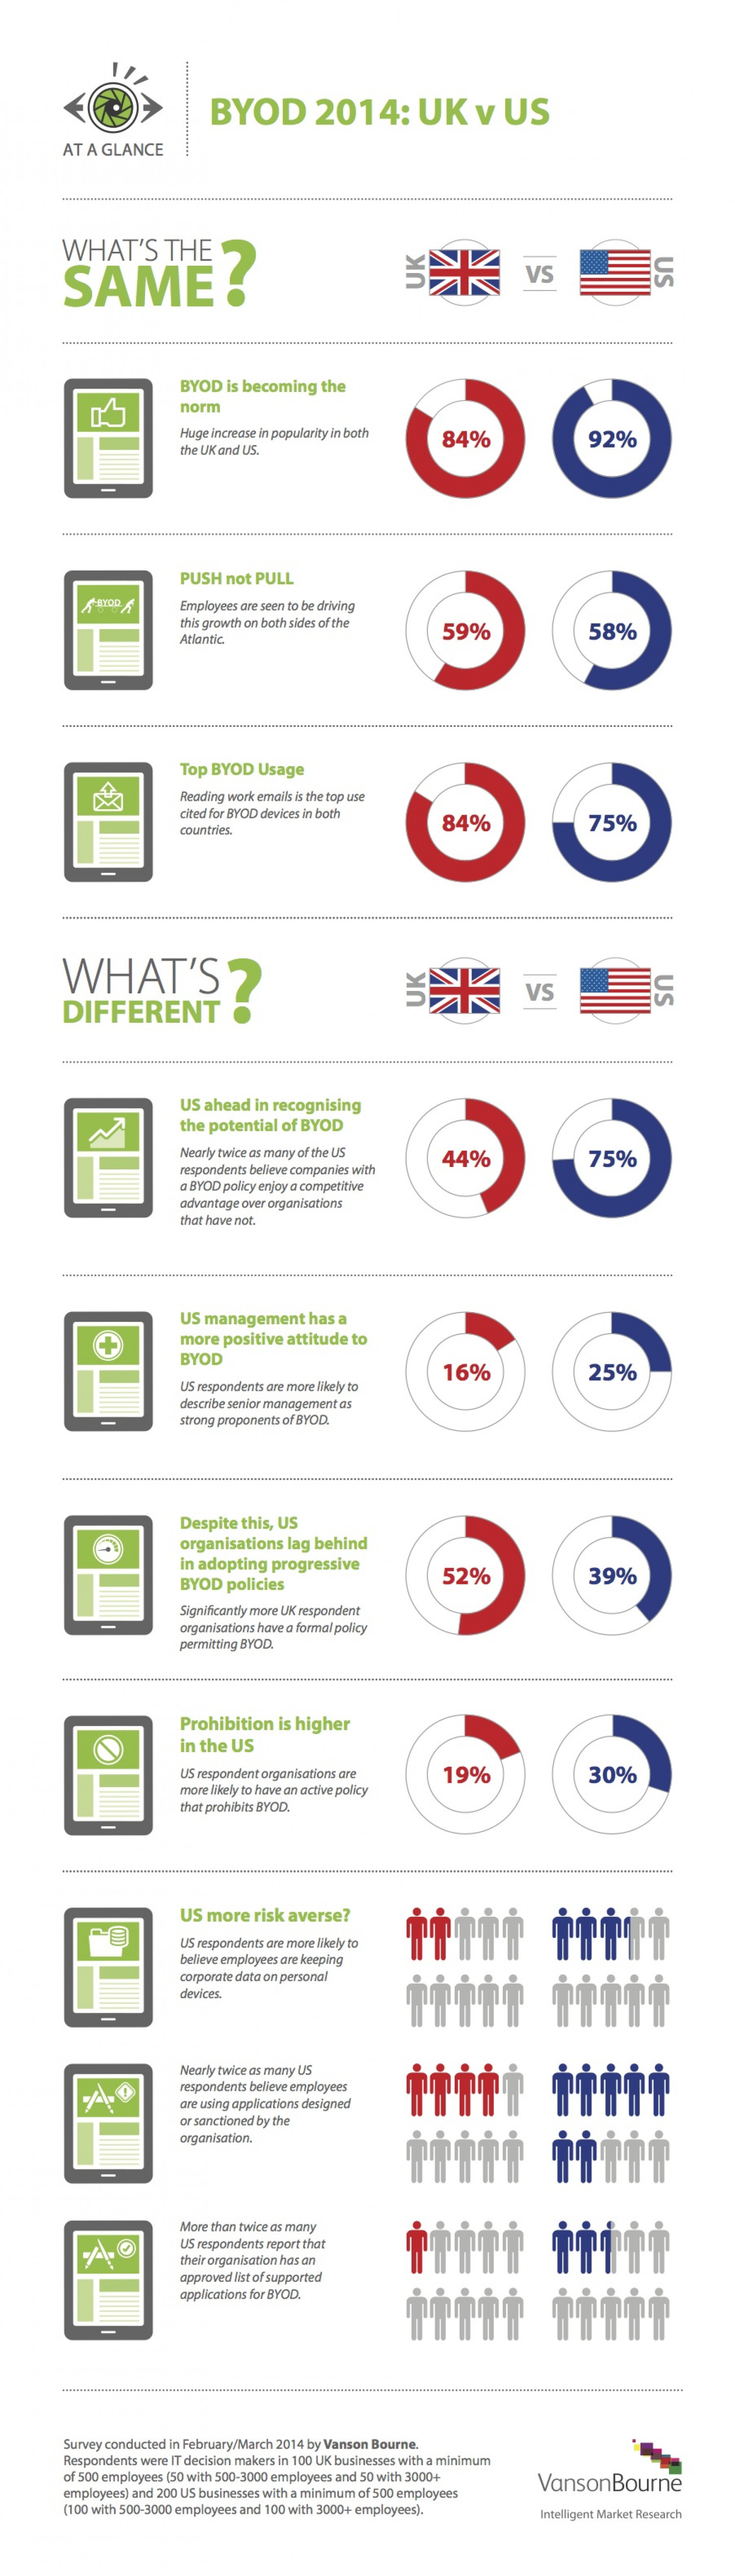 BYOD 2014: UK v US Infographic